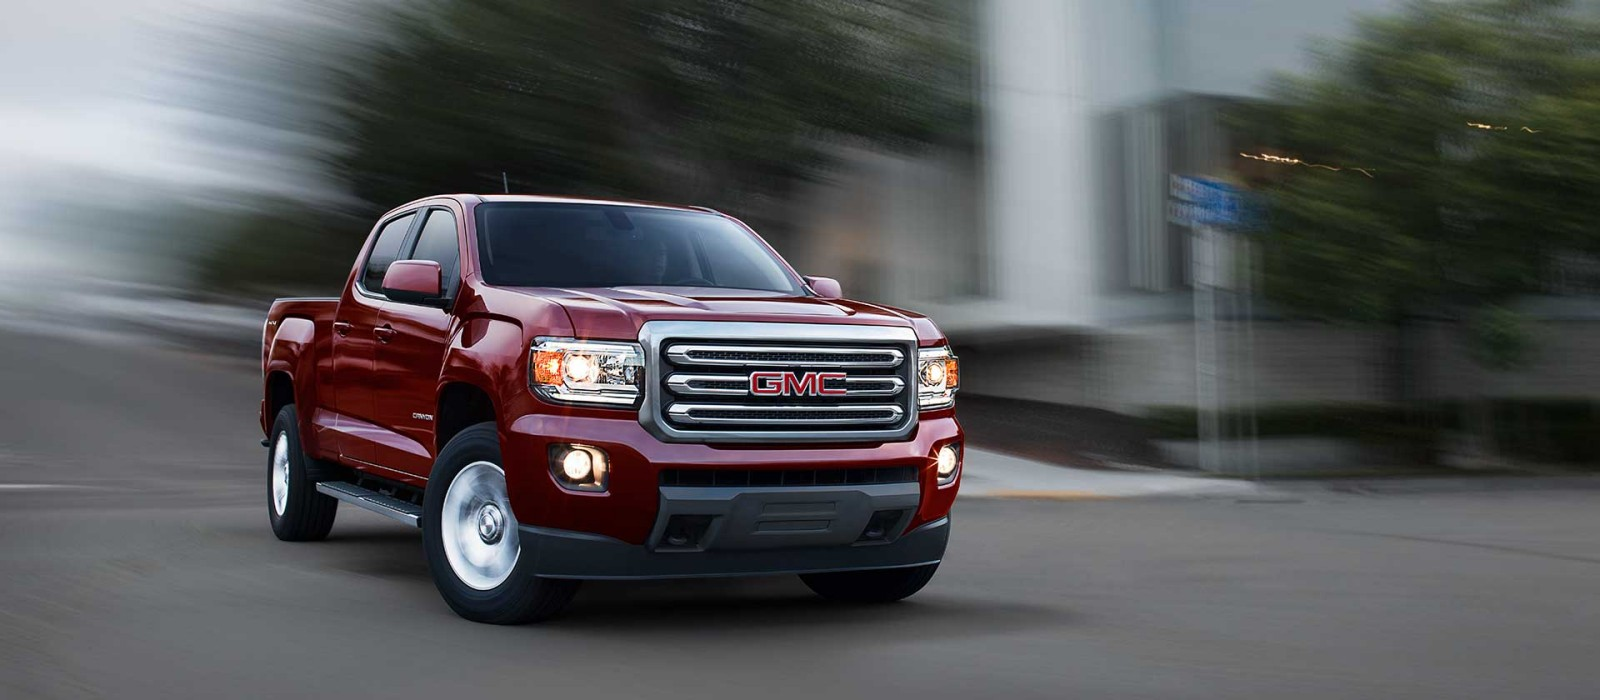 tanked gmc silverado highstrength the incentives lost chevy why war advantage steelbed incentive sales have